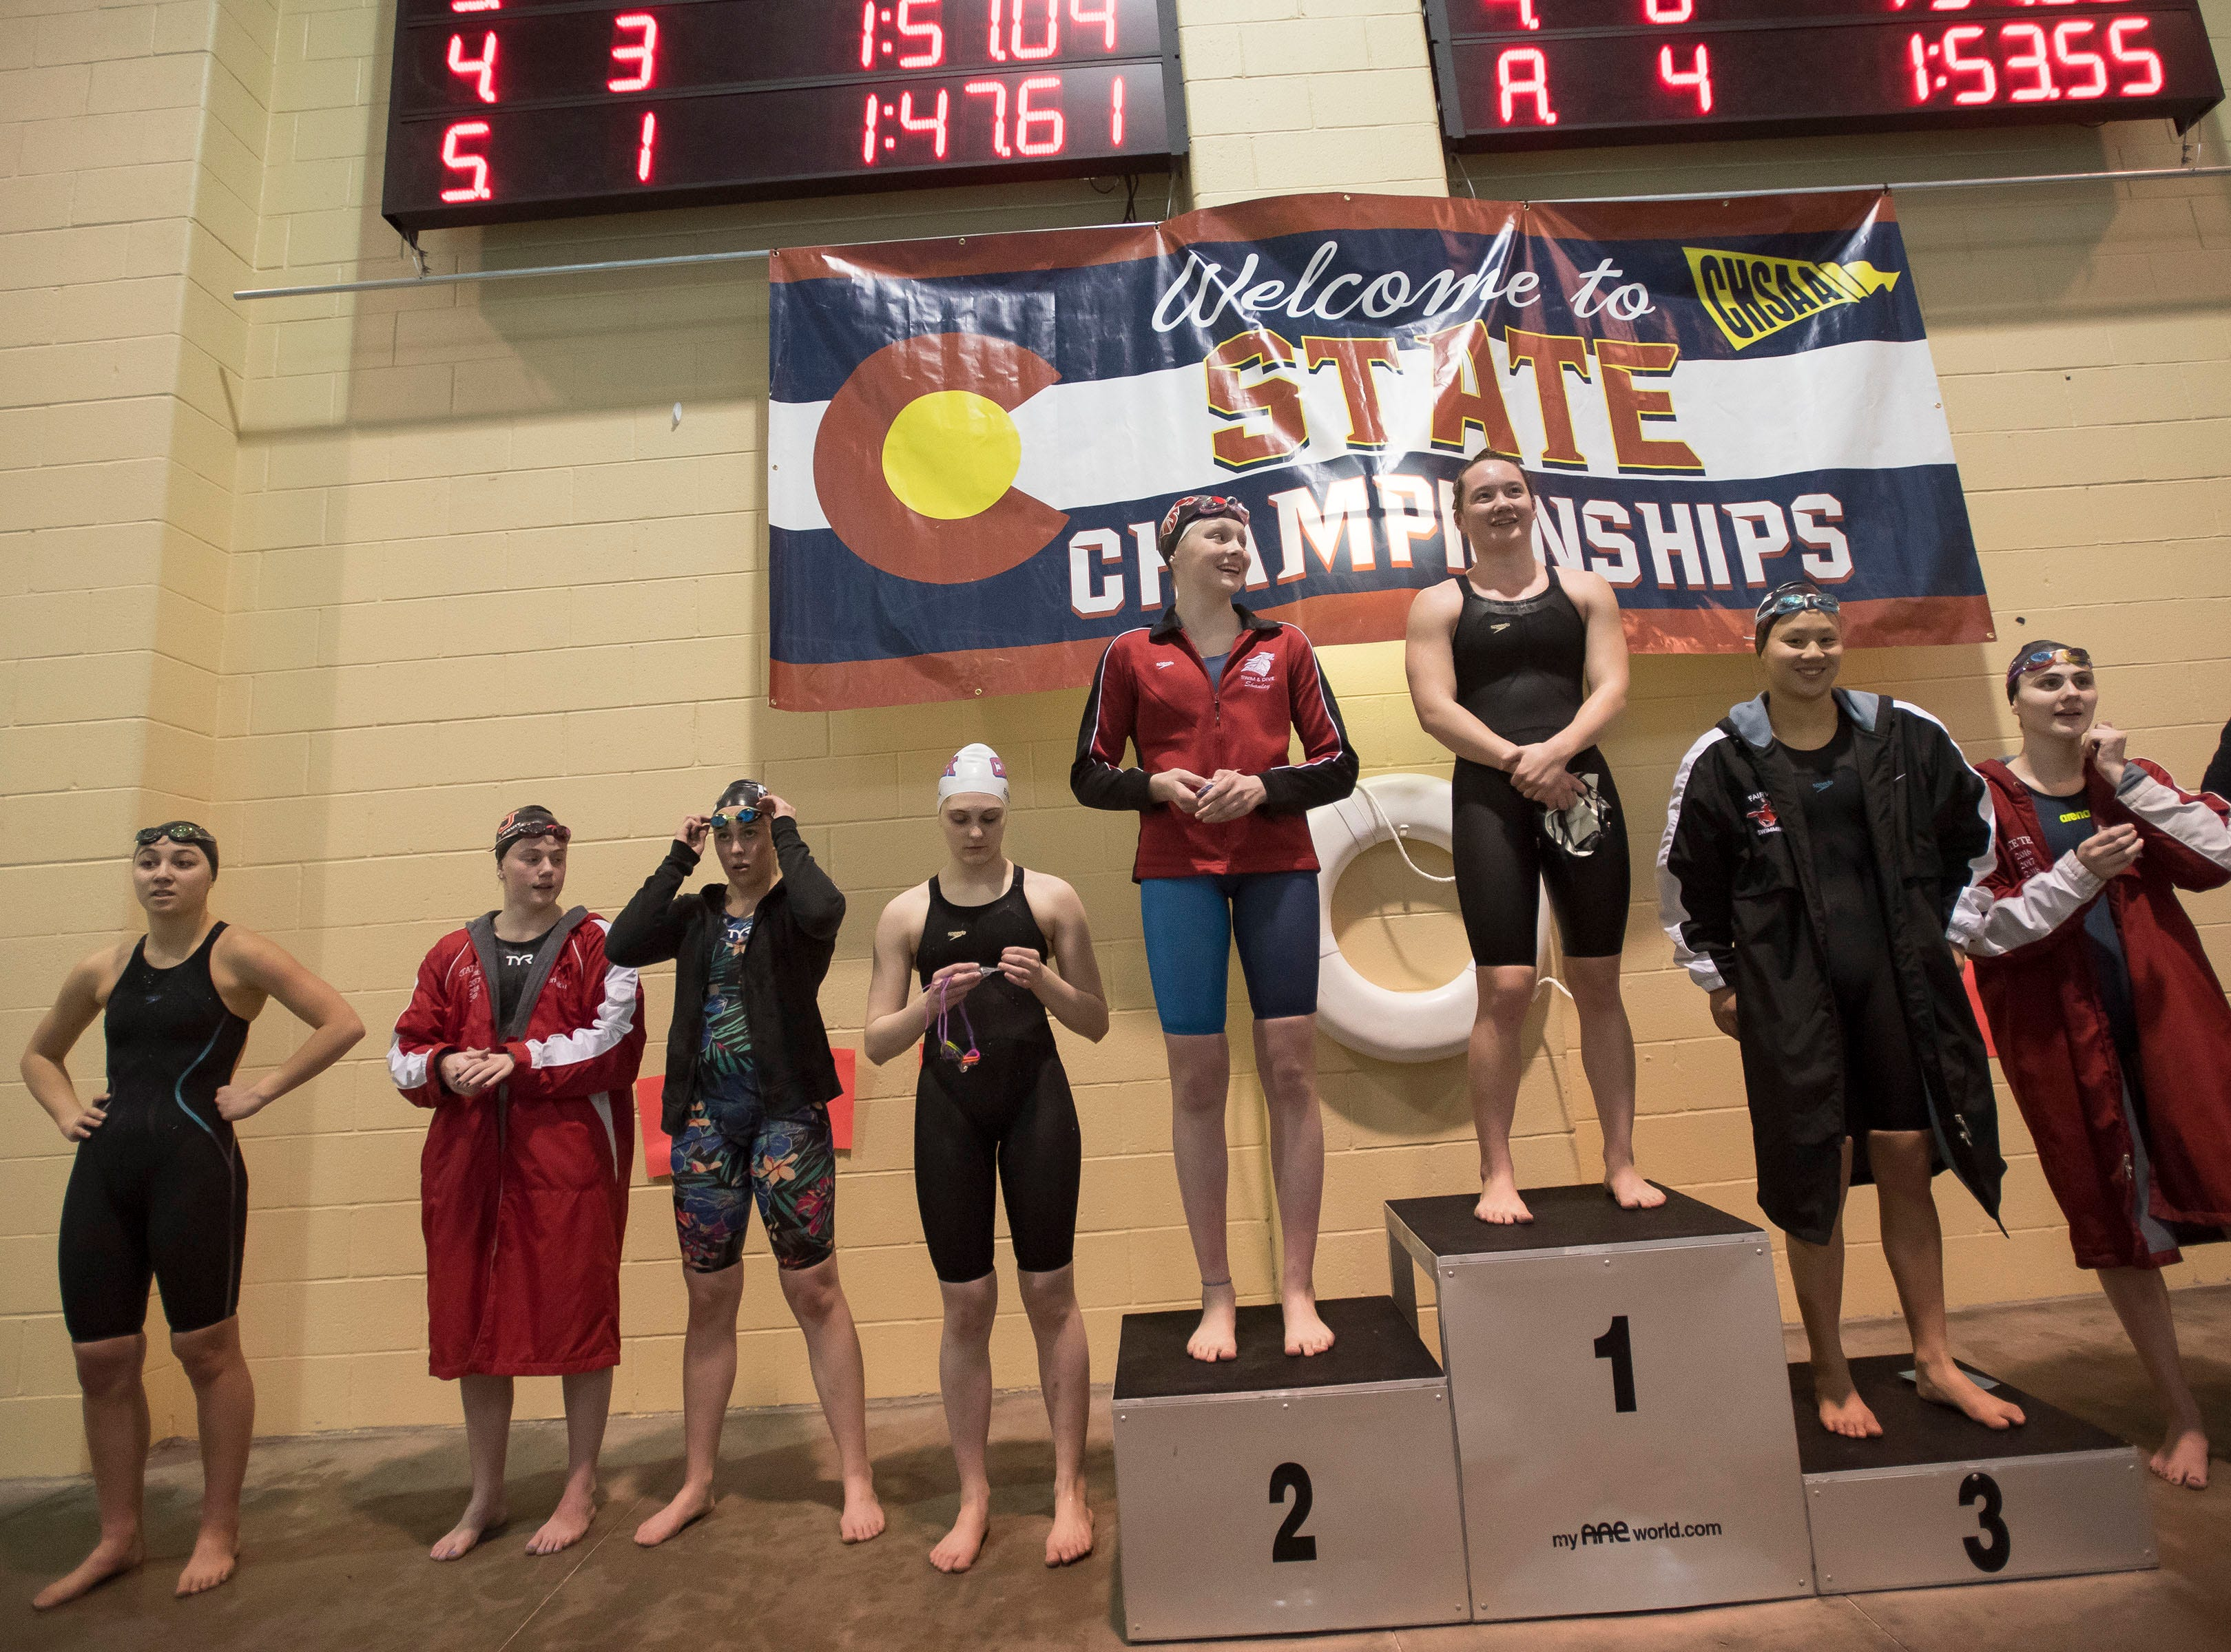 Fossil Ridge senior Coleen Gillilan stands atop the podium after winning the women's 200 yard freestyle on Saturday, Feb. 9, 2019, at Veterans Memorial Aquatic Center in Thornton, Colo.